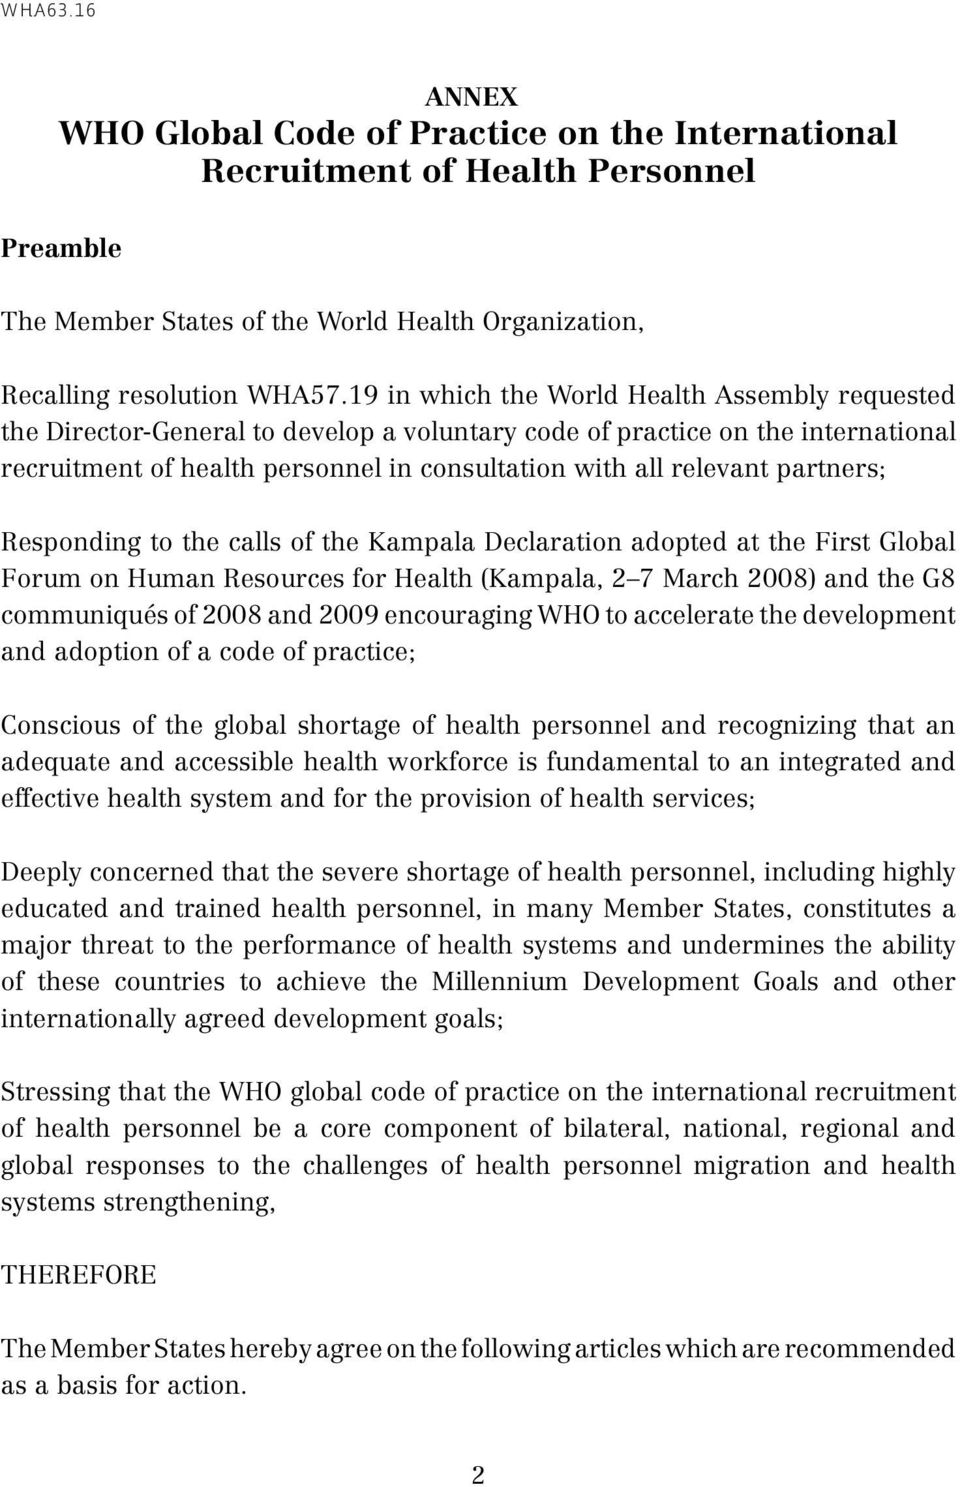 partners; Responding to the calls of the Kampala Declaration adopted at the First Global Forum on Human Resources for Health (Kampala, 2 7 March 2008) and the G8 communiqués of 2008 and 2009